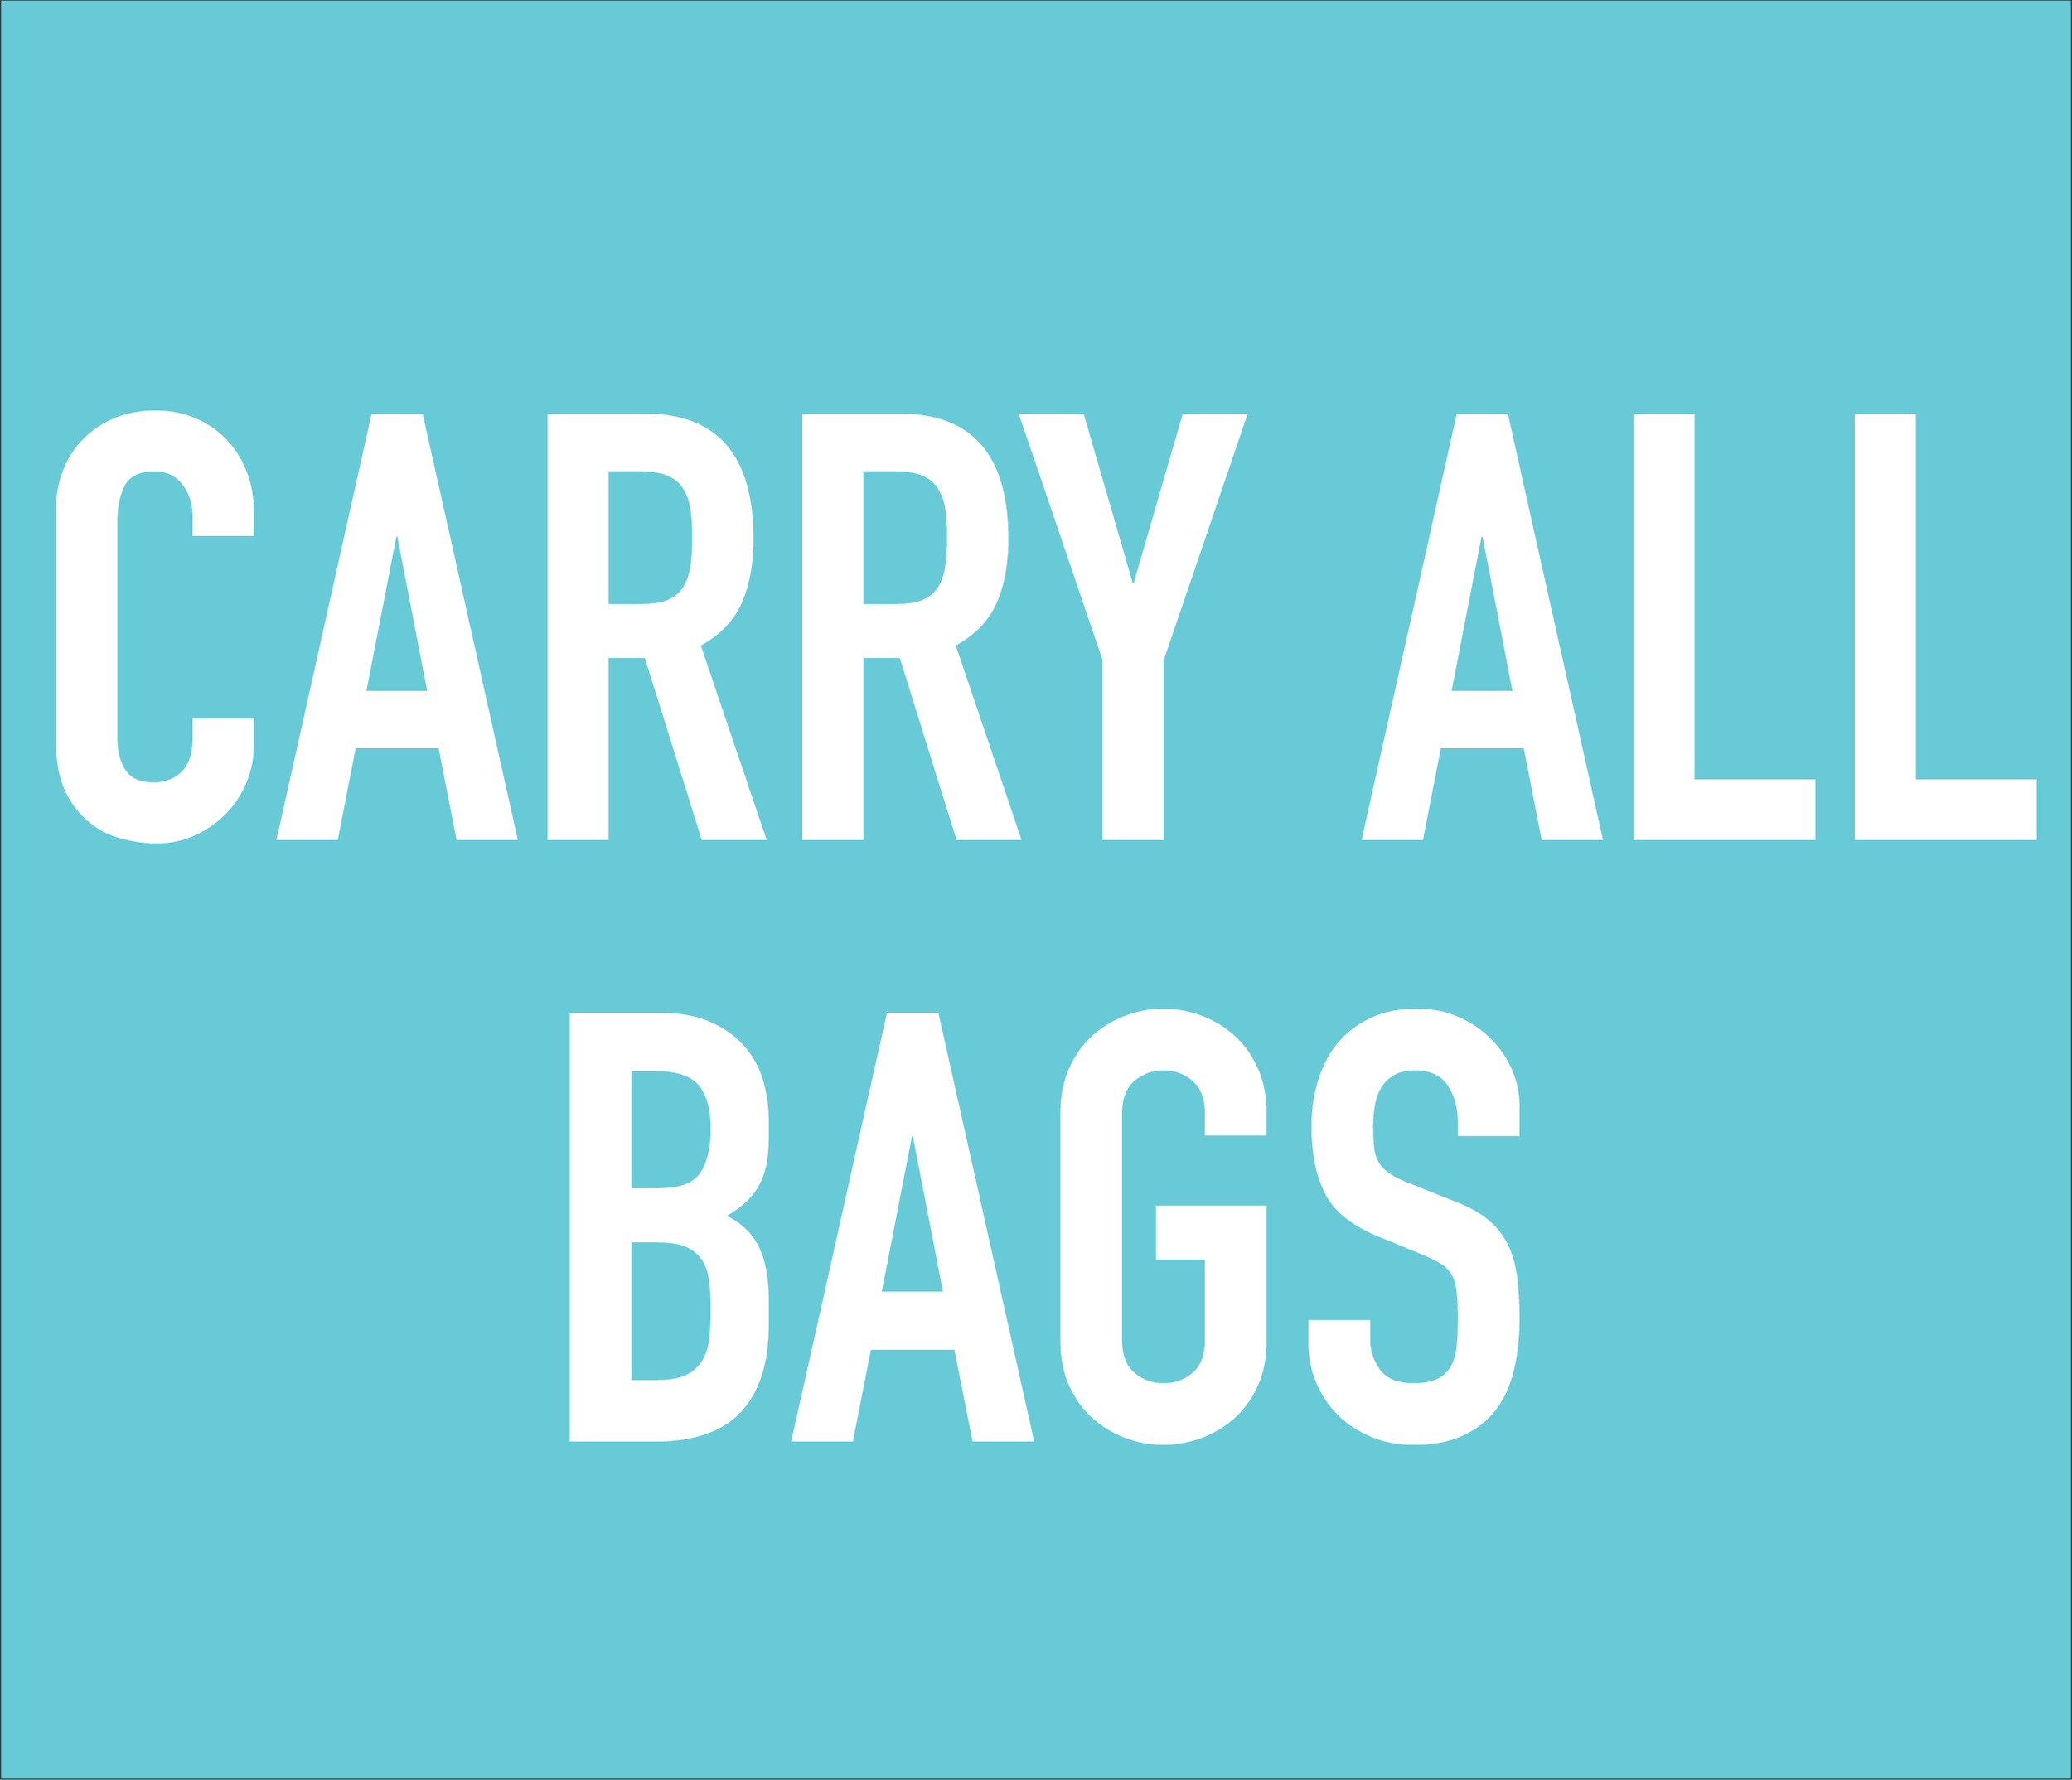 everyday bags for organization - choose from makeup bags to zipper carry-alls